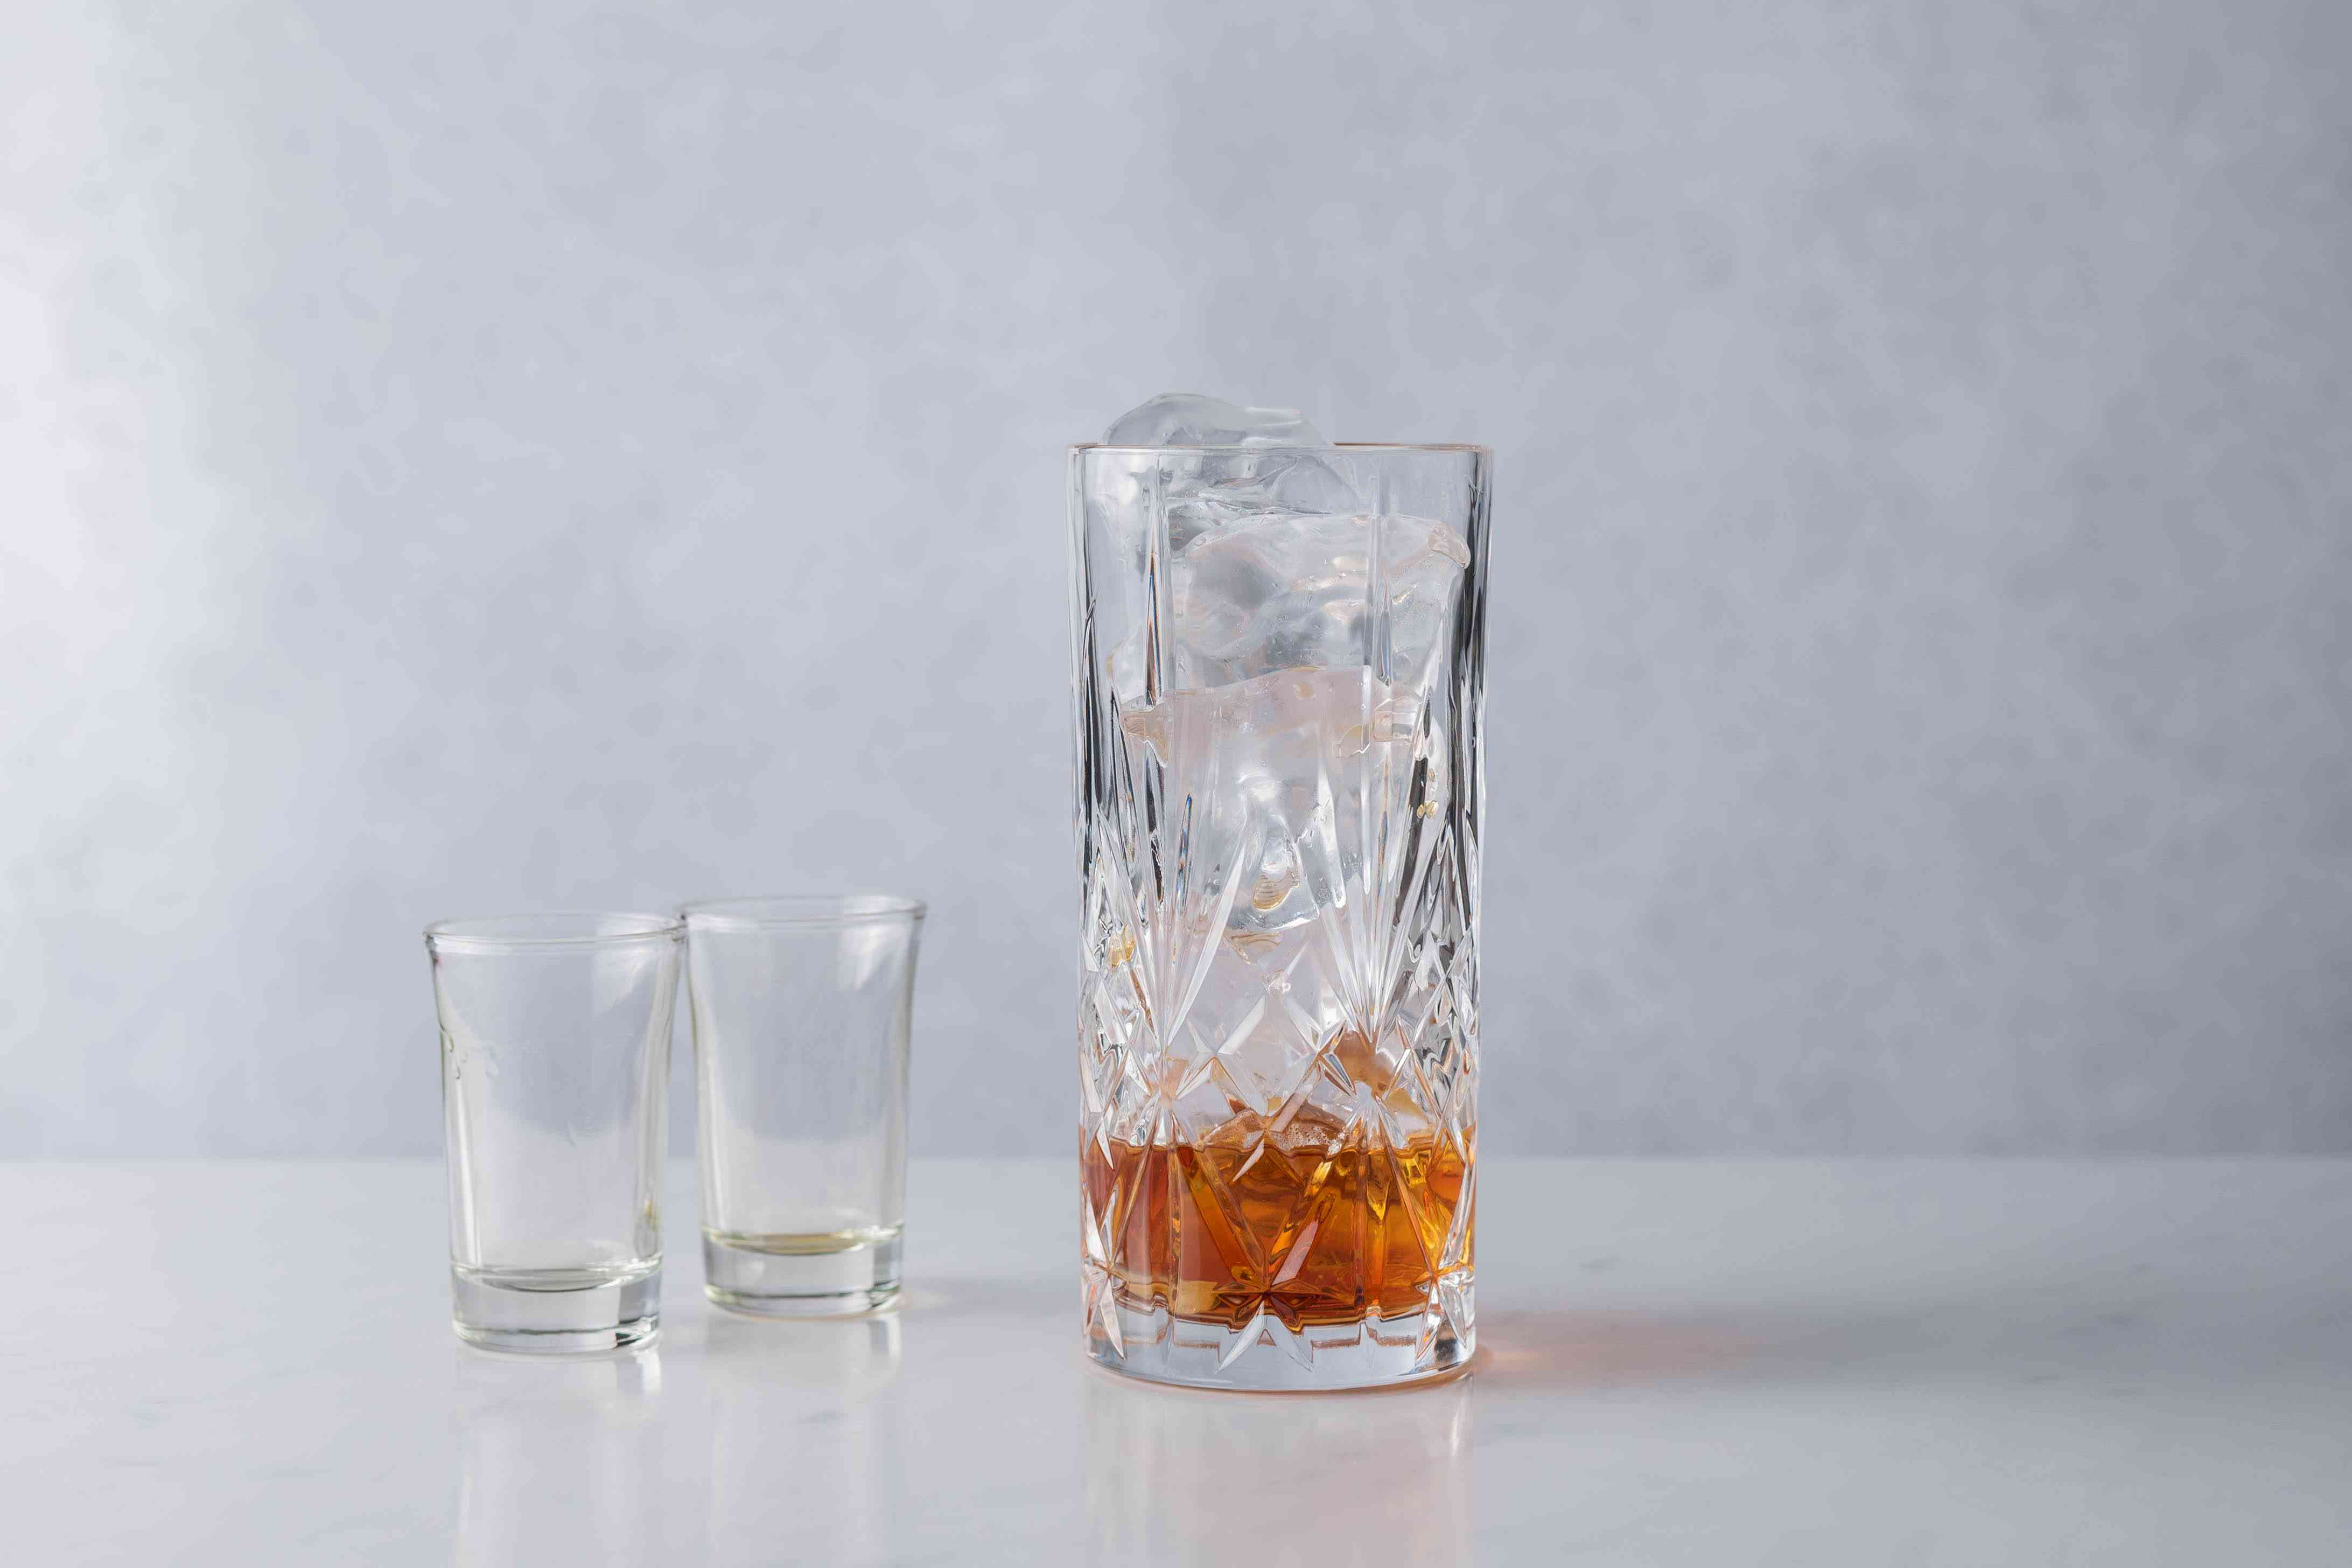 Add Licor 43 and rum to the glass